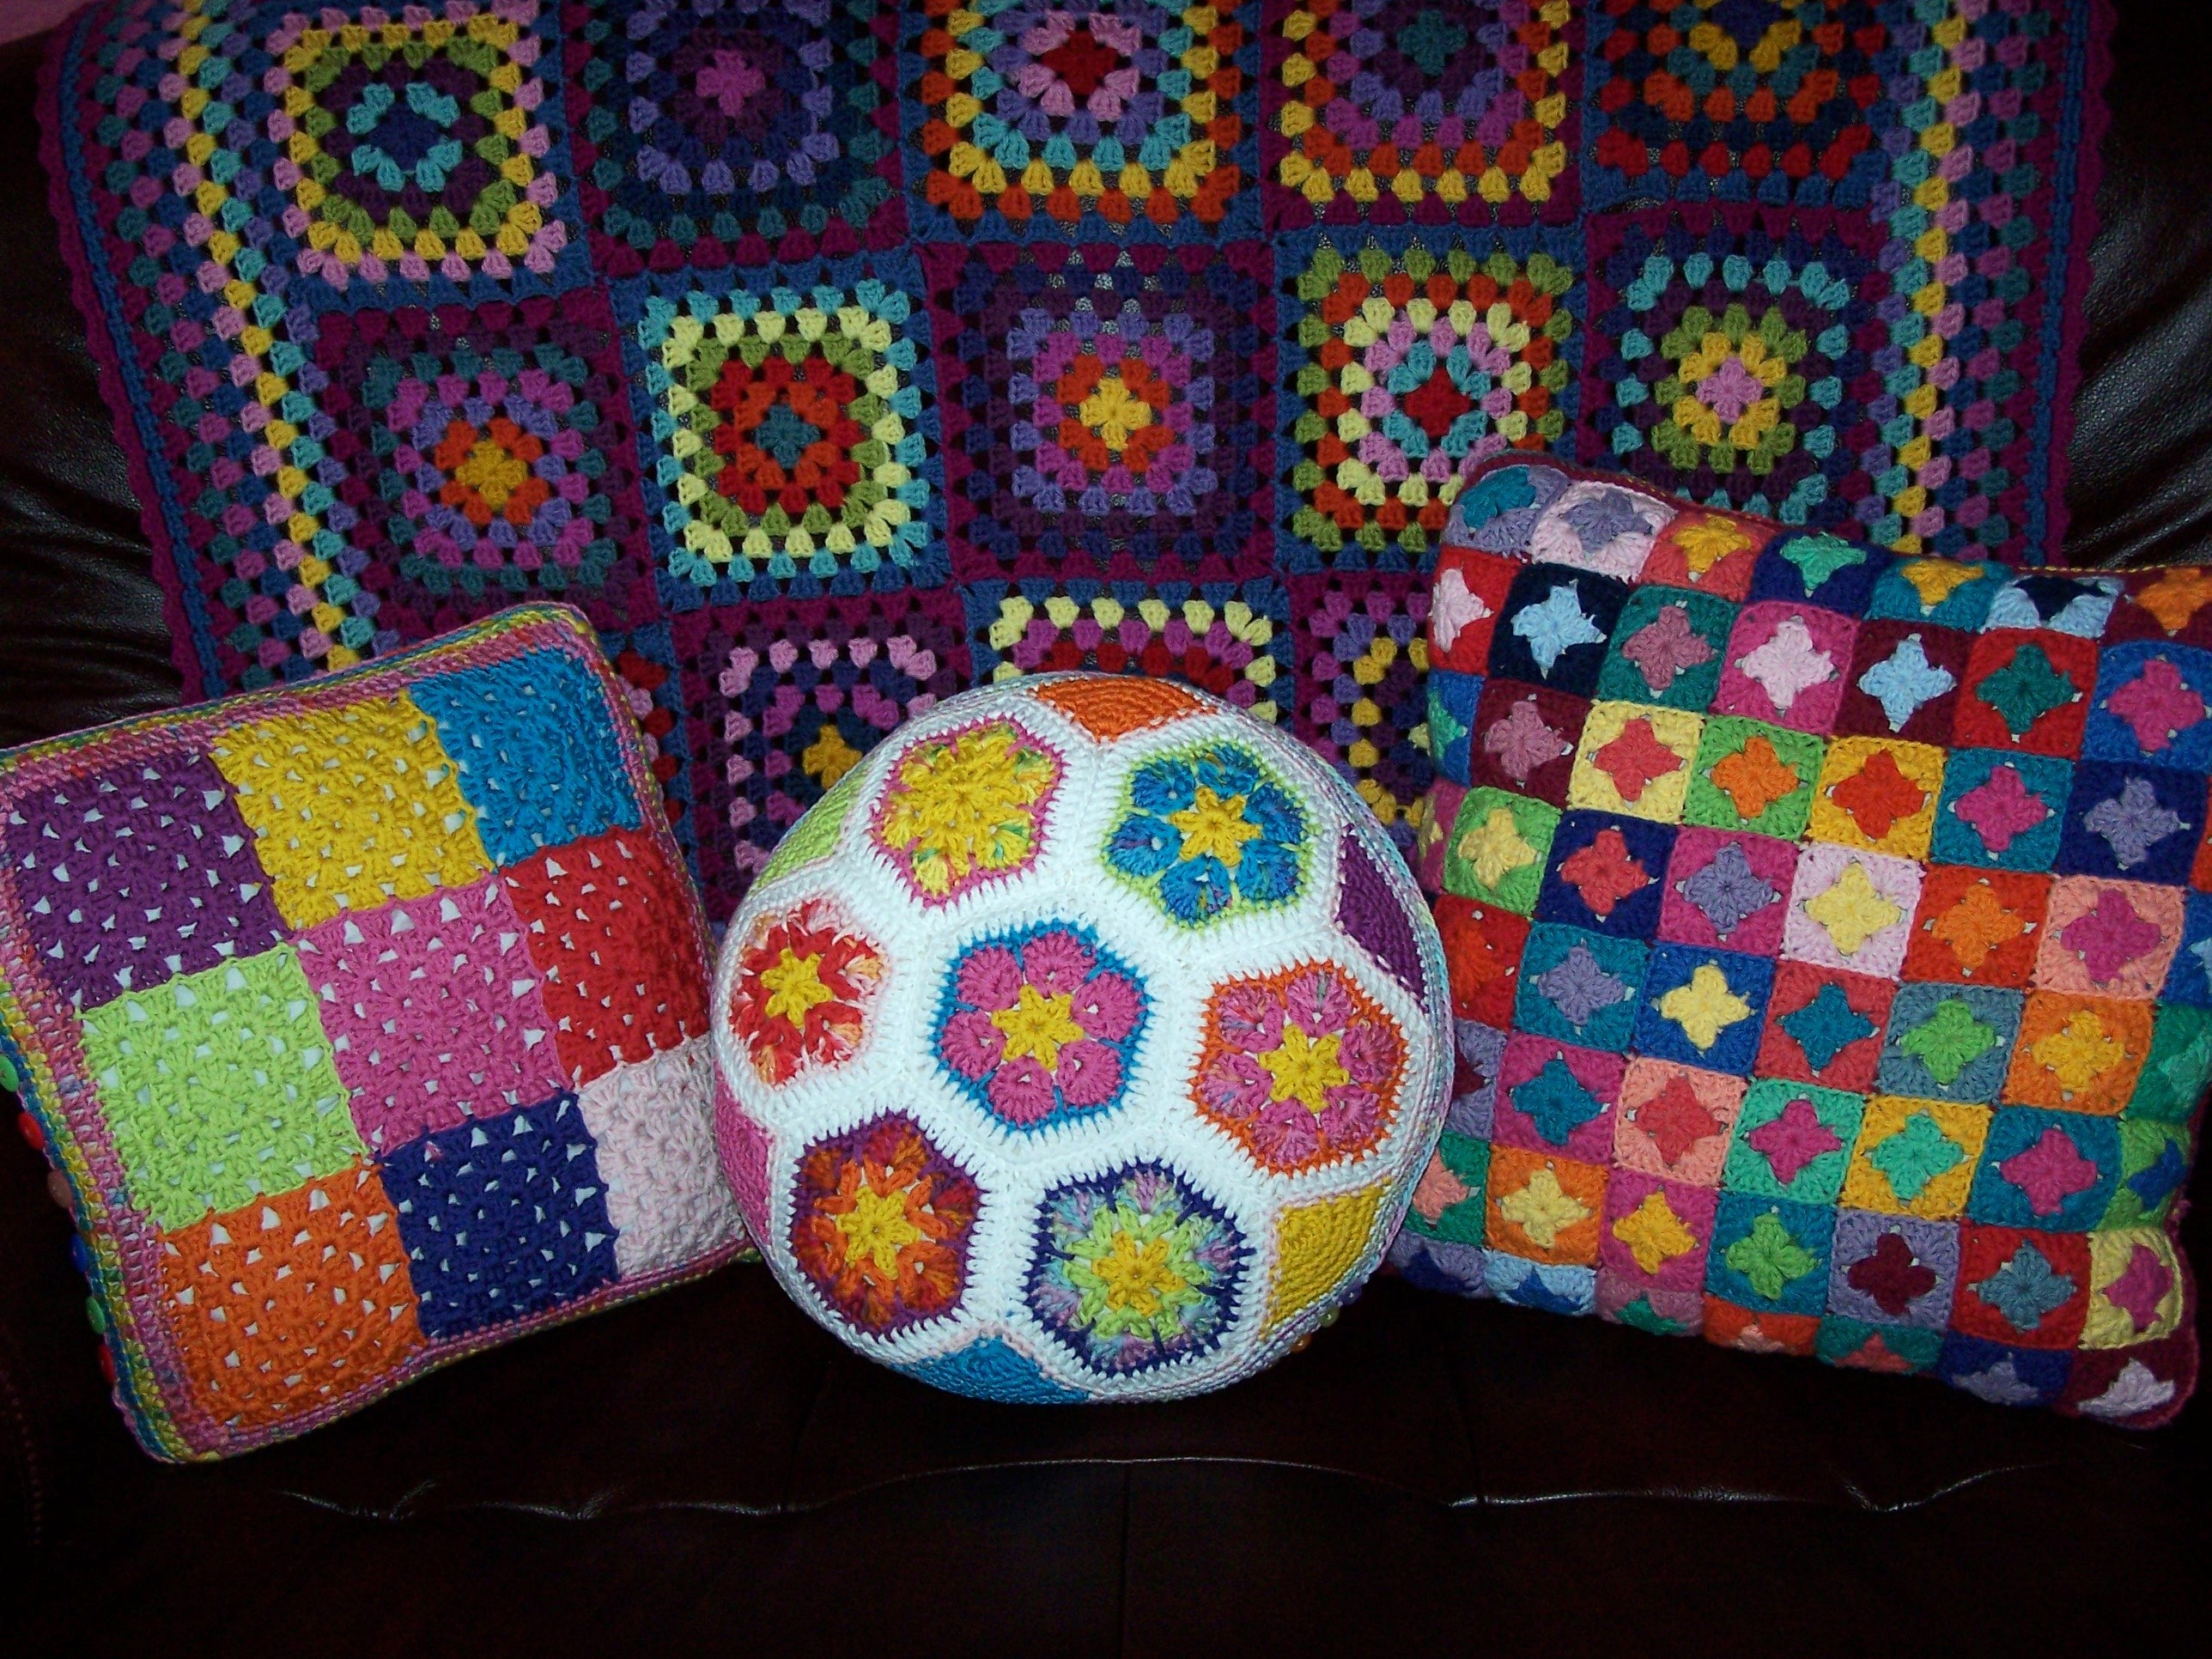 Misty Mountain: Crochet blankets and pillows